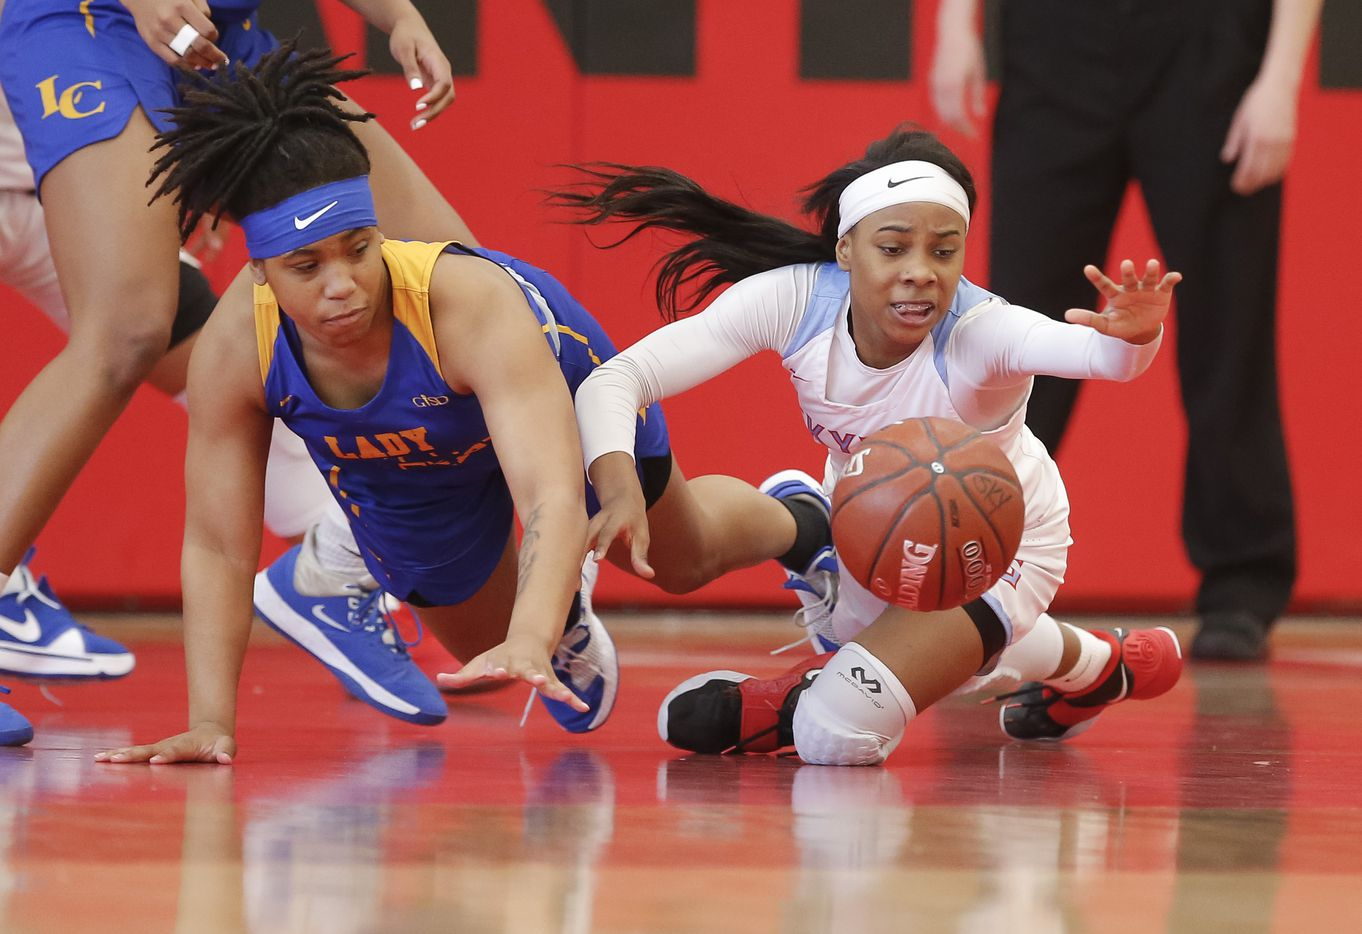 Lakeview Centennial junior Taliyah Harris, left, and Skyline sophomore Kennedi Johnson vie for a loose ball during a girls basketball first-round playoff game at Hillcrest High School in Dallas, Saturday, February 13, 2021. Skyline won 49-42. (Brandon Wade/Special Contributor)